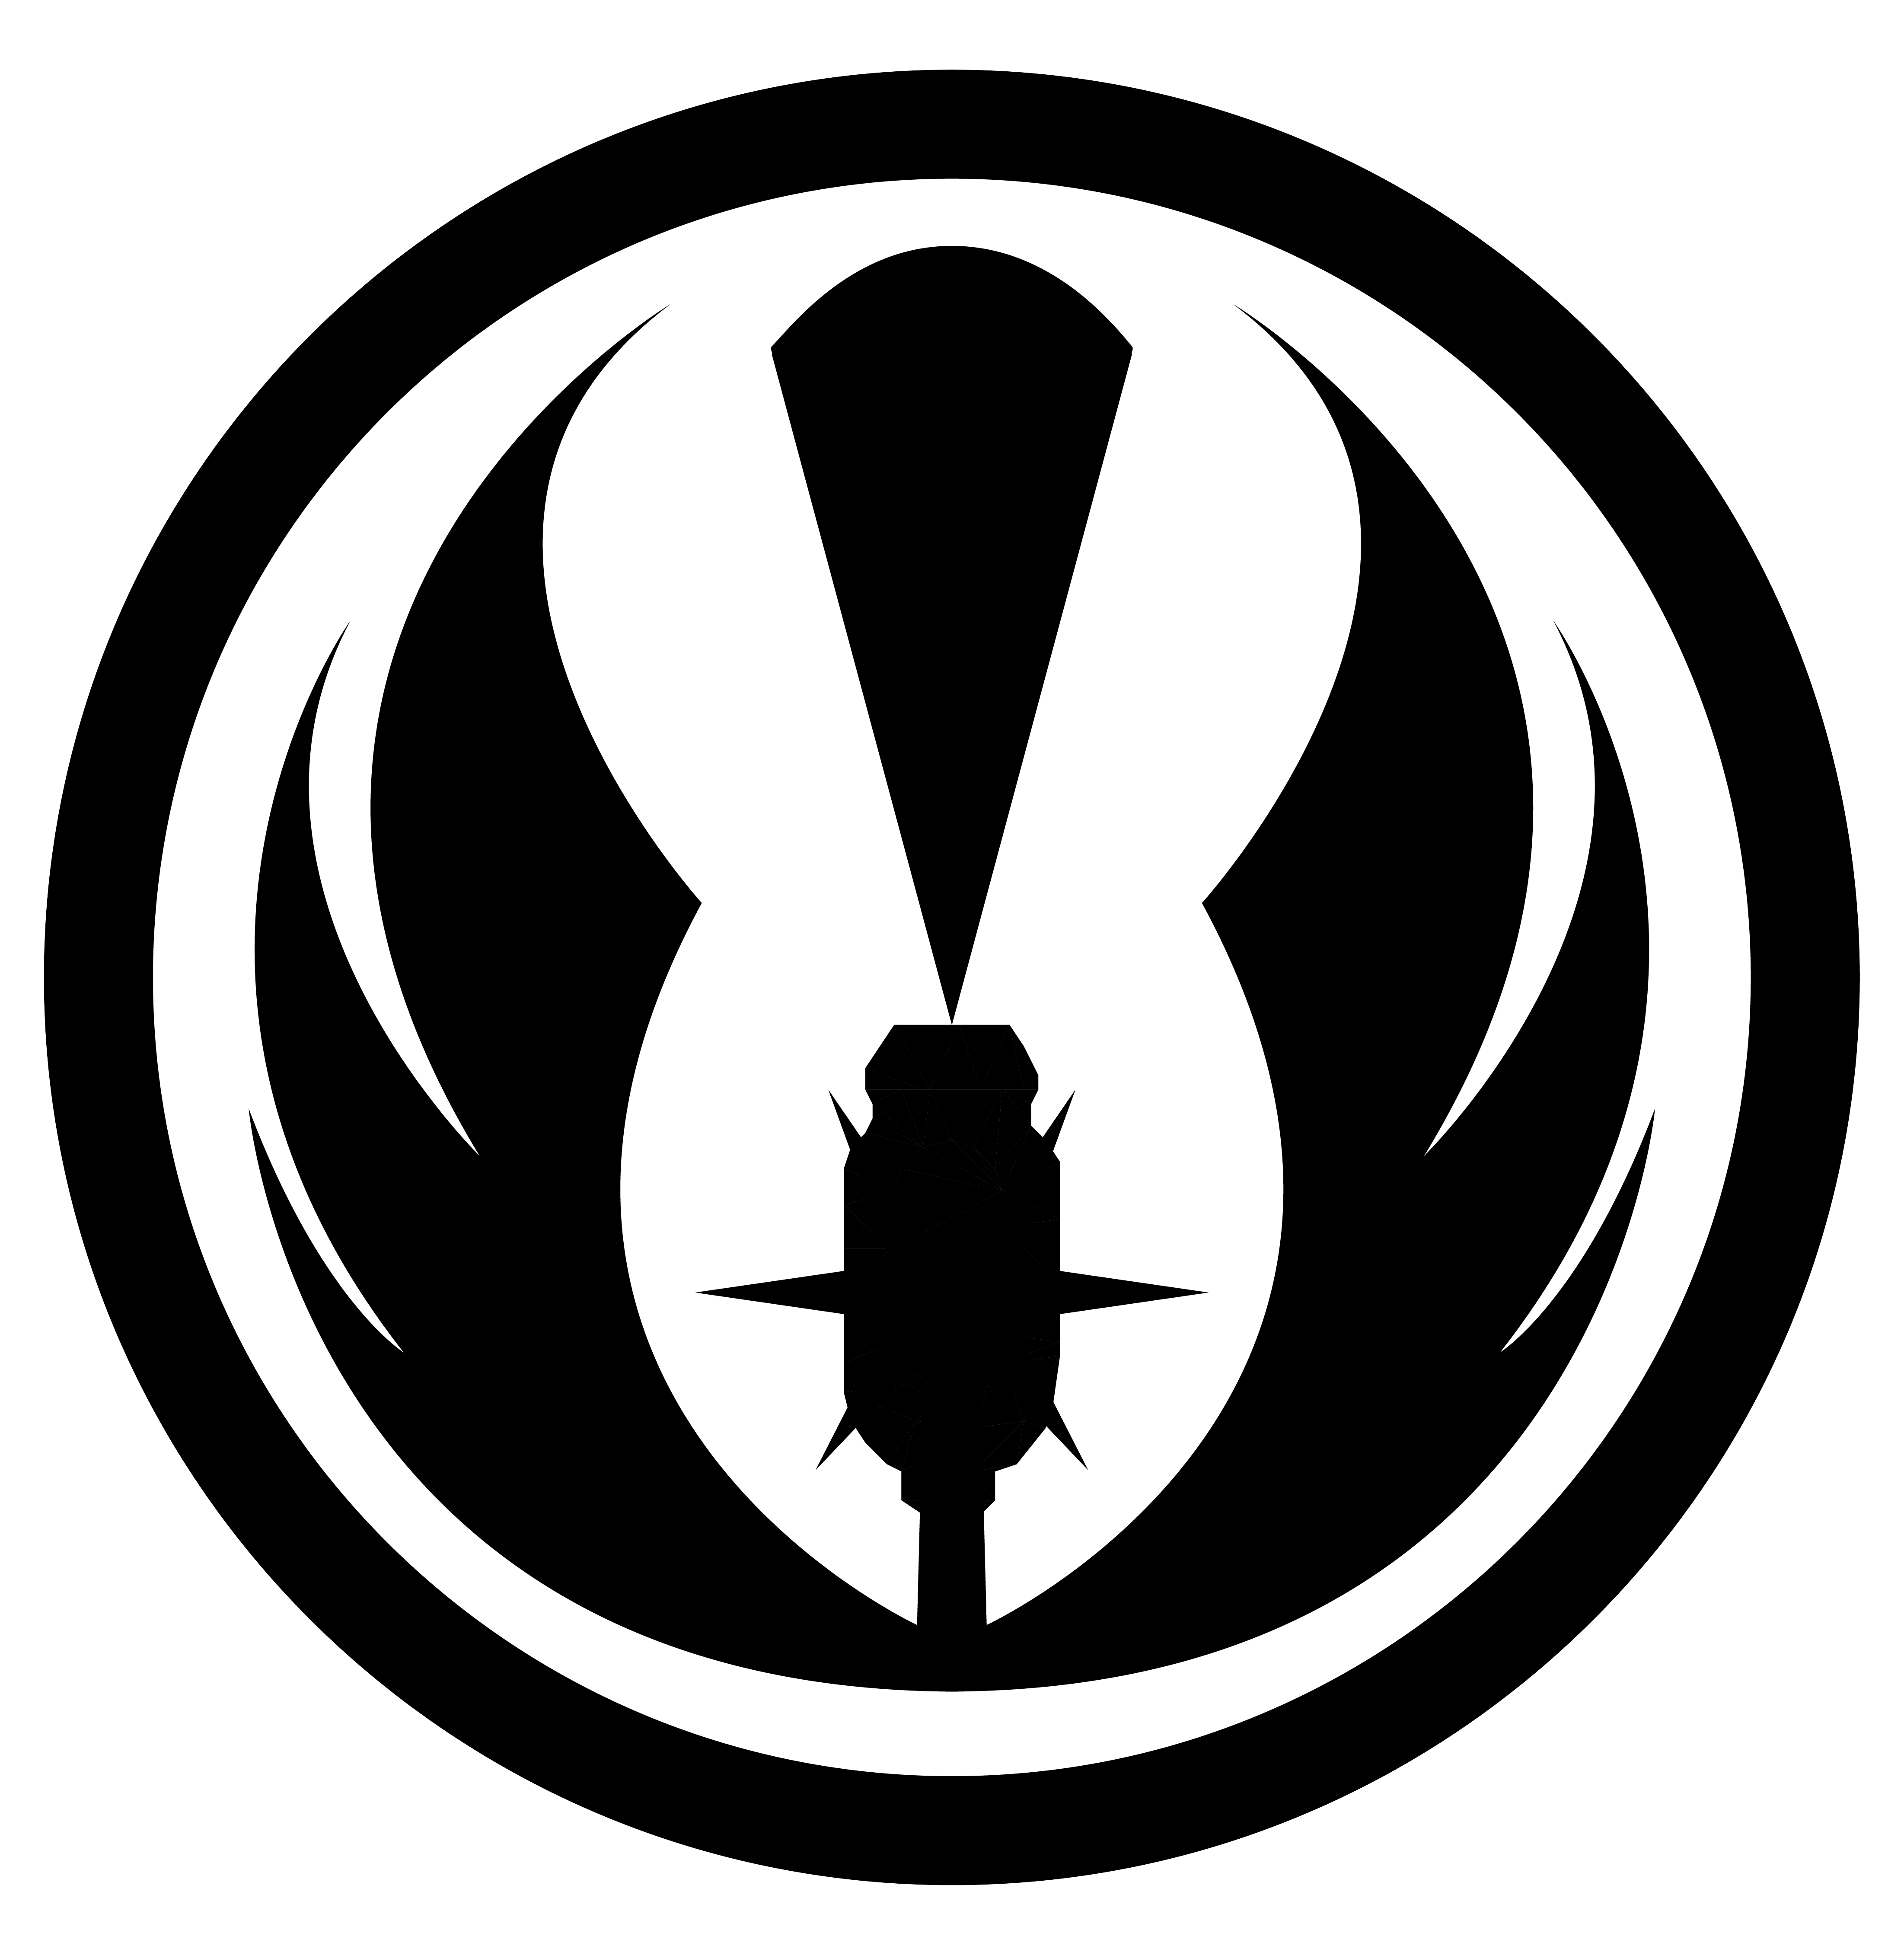 Emblem of the Knights of the POCUS Jedi Order